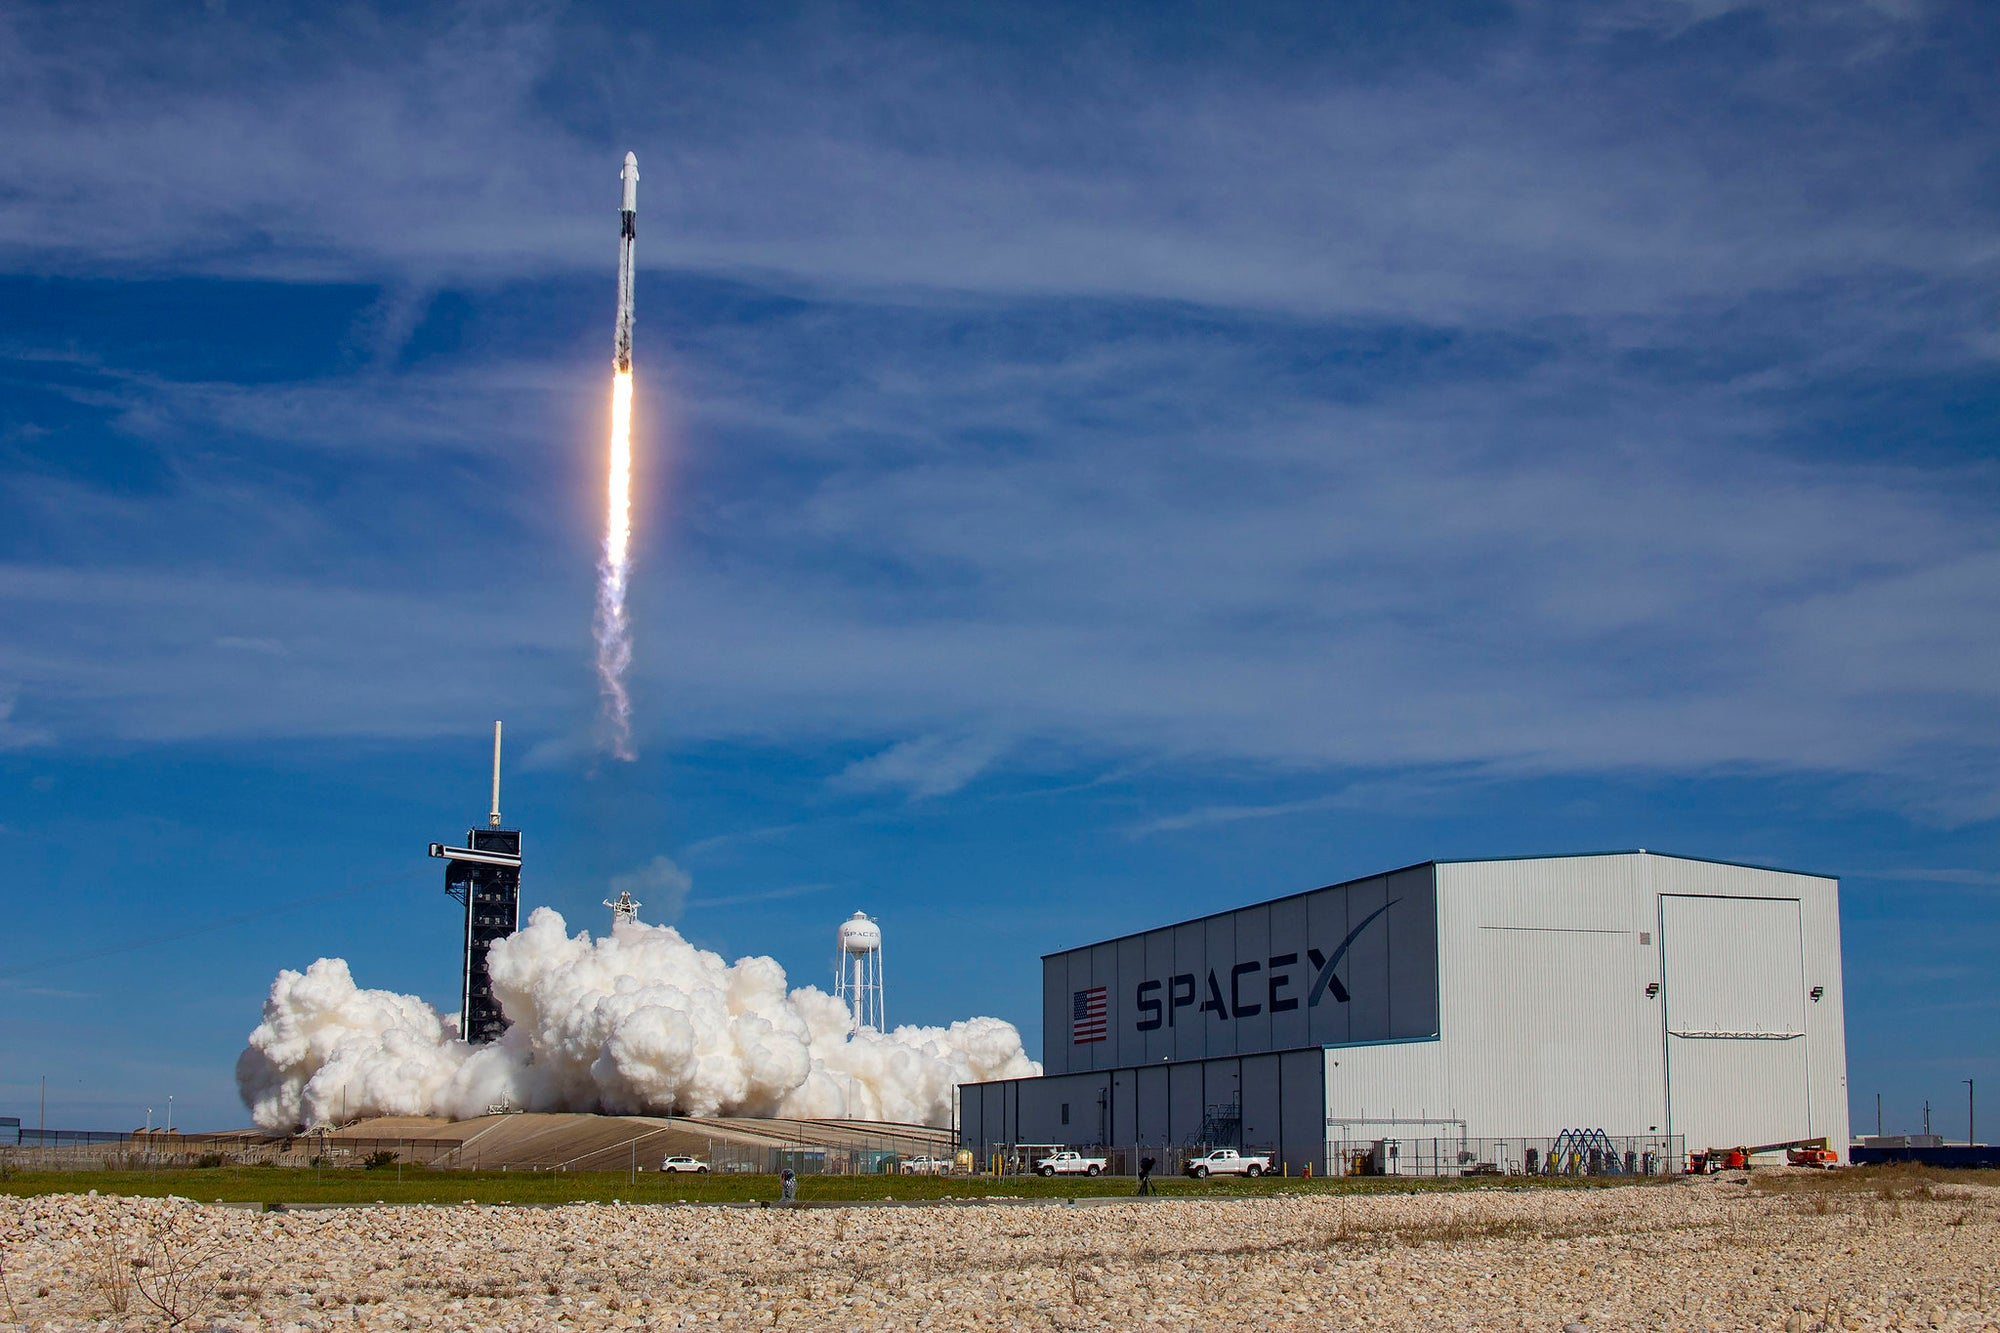 President of Indonesia invites SpaceX to assess the country as a potential launch site